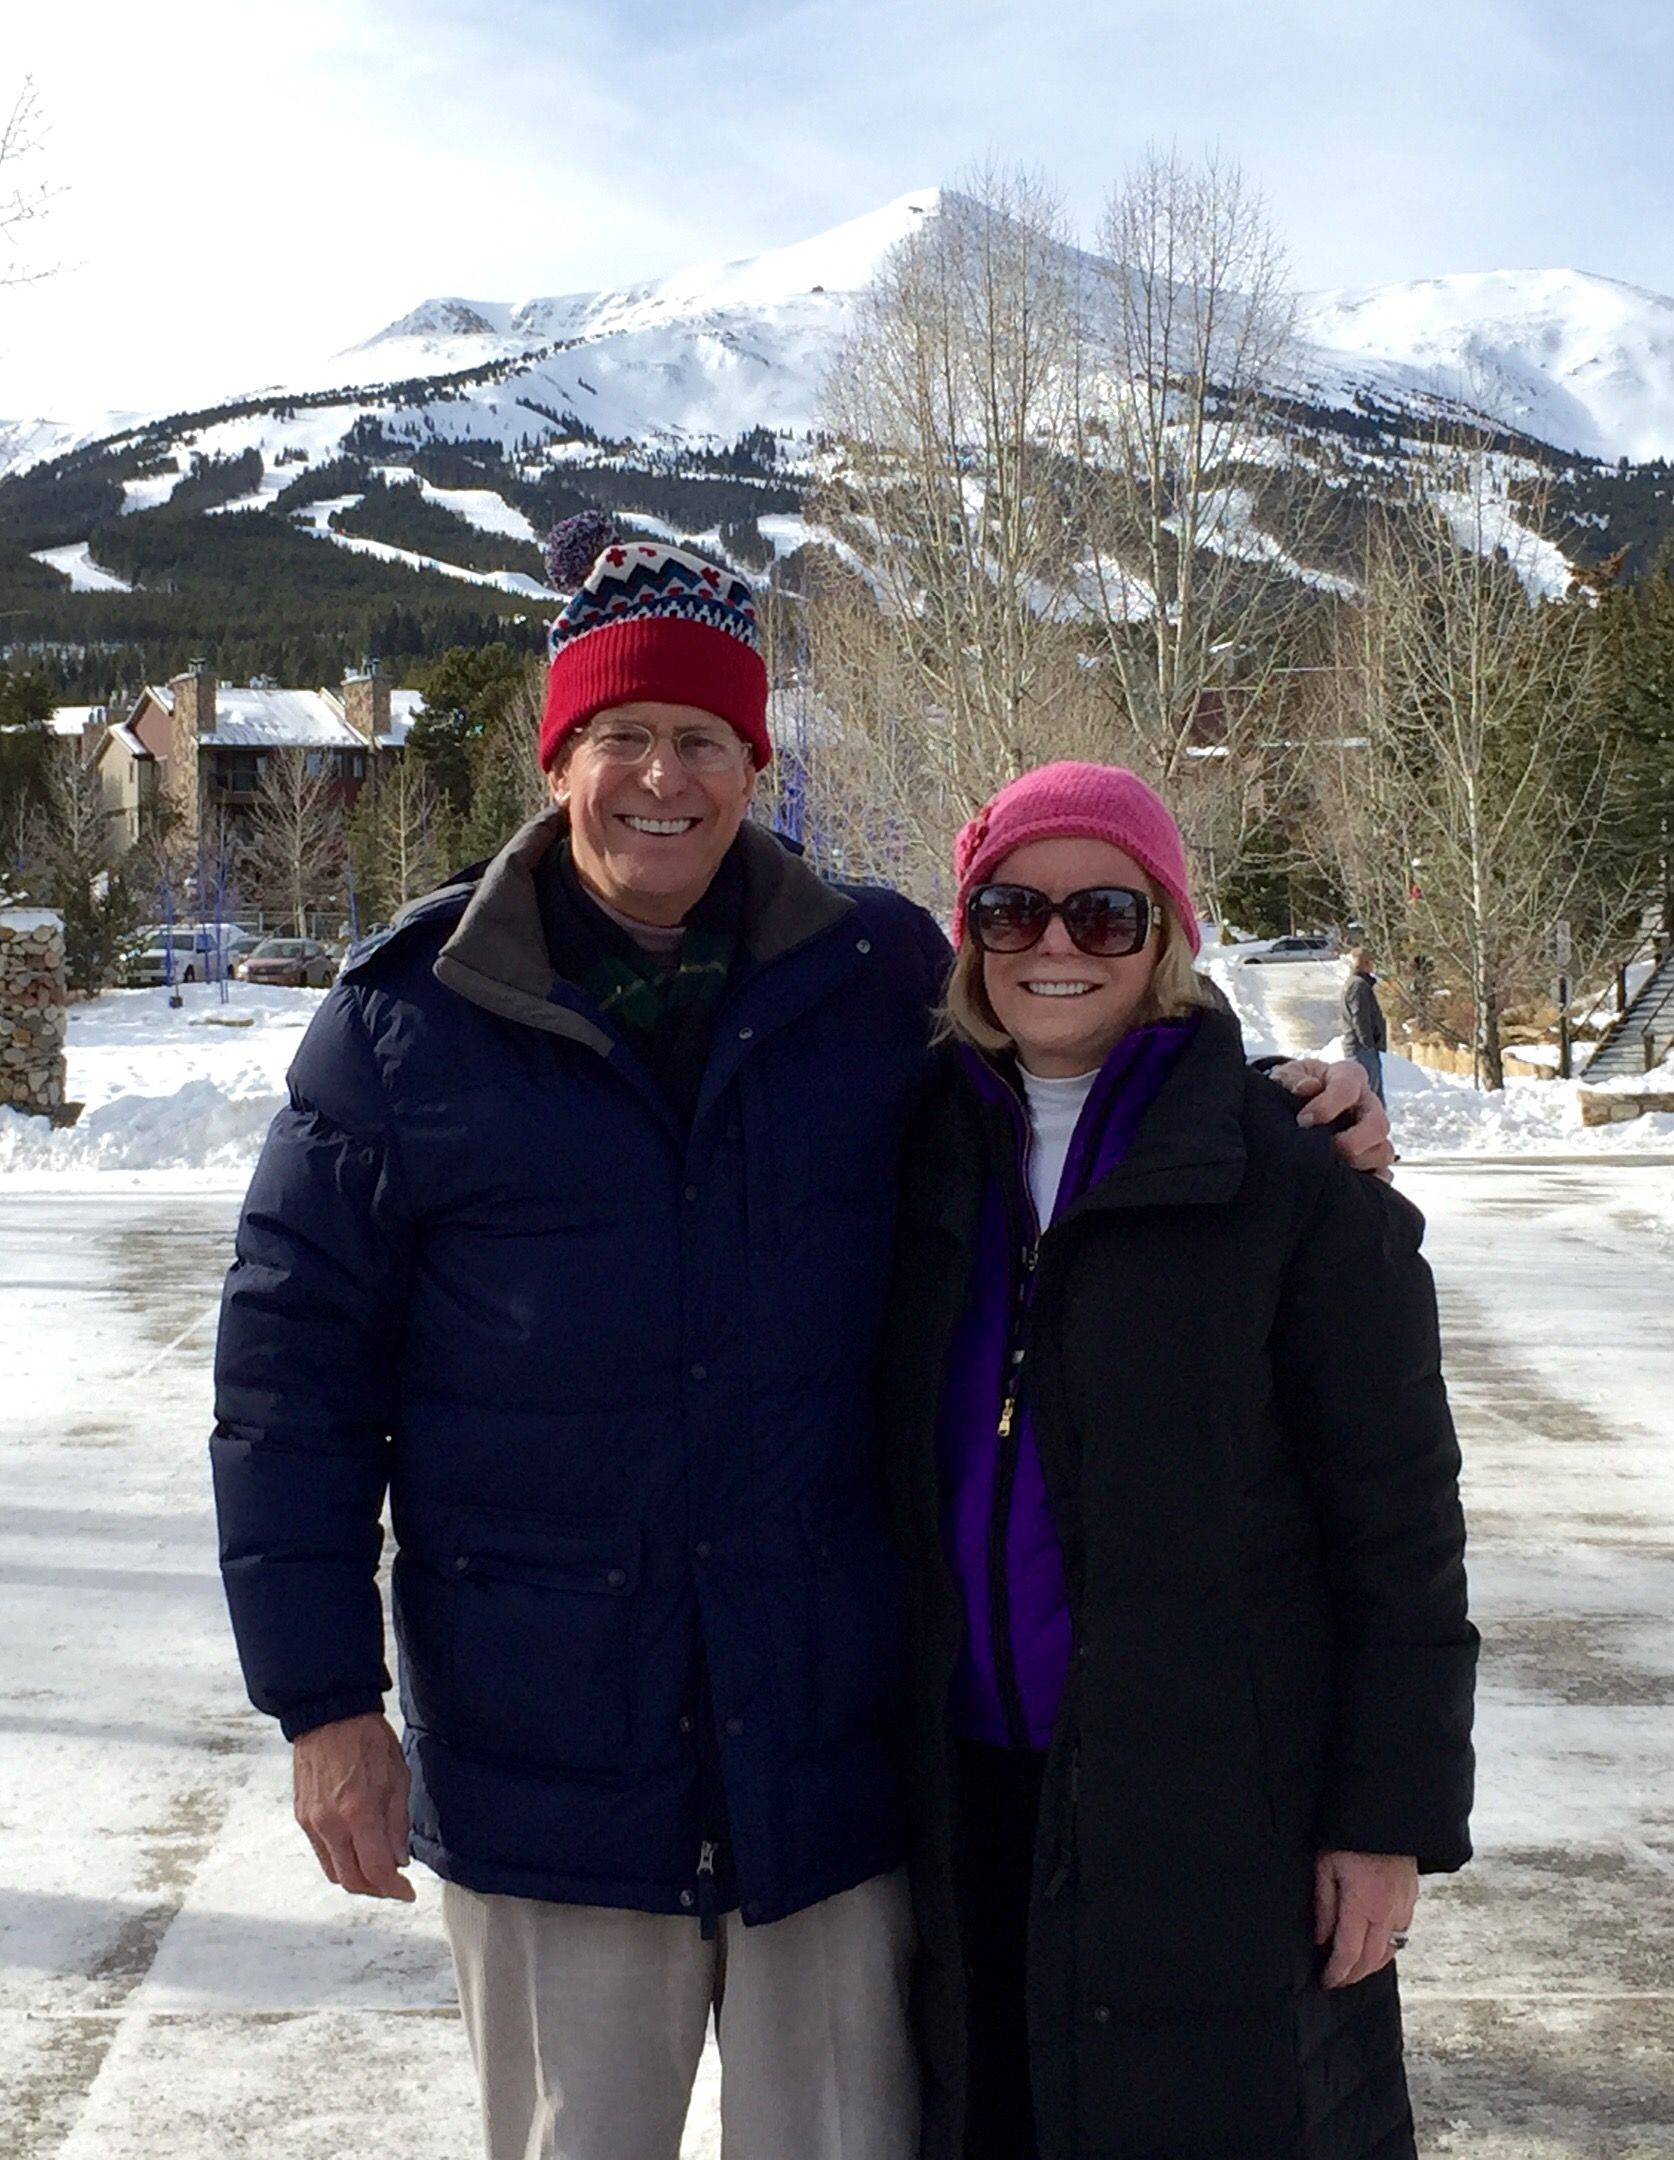 Lansing Palmer '62 and his wife Pat in Colorado / December 2015